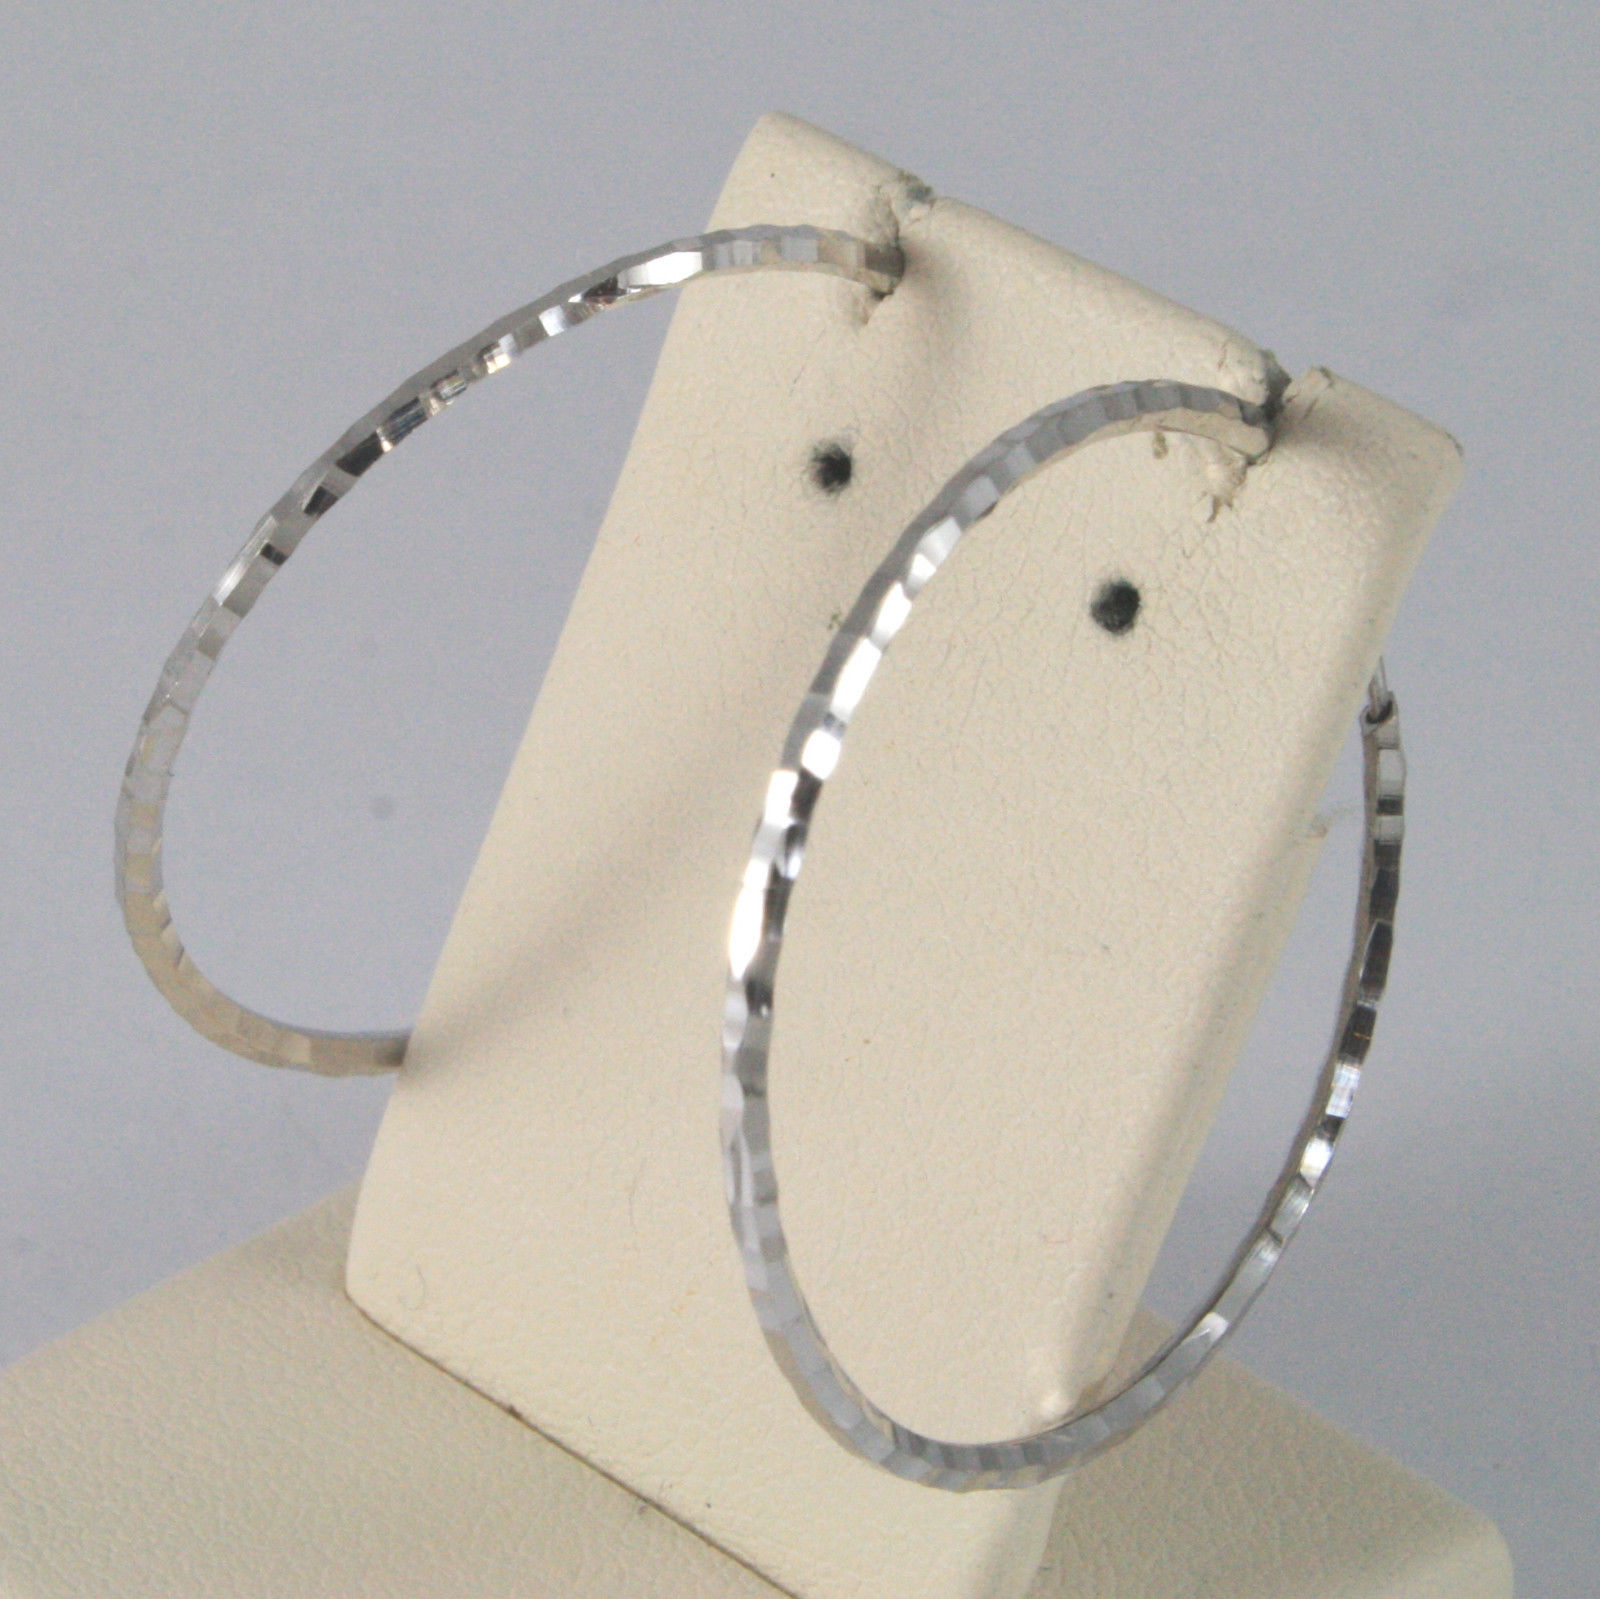 SOLID 18KT. WHITE GOLD CIRCLE HAMMERED EARRINGS DIAMETER 1,1 IN MADE IN ITALY.